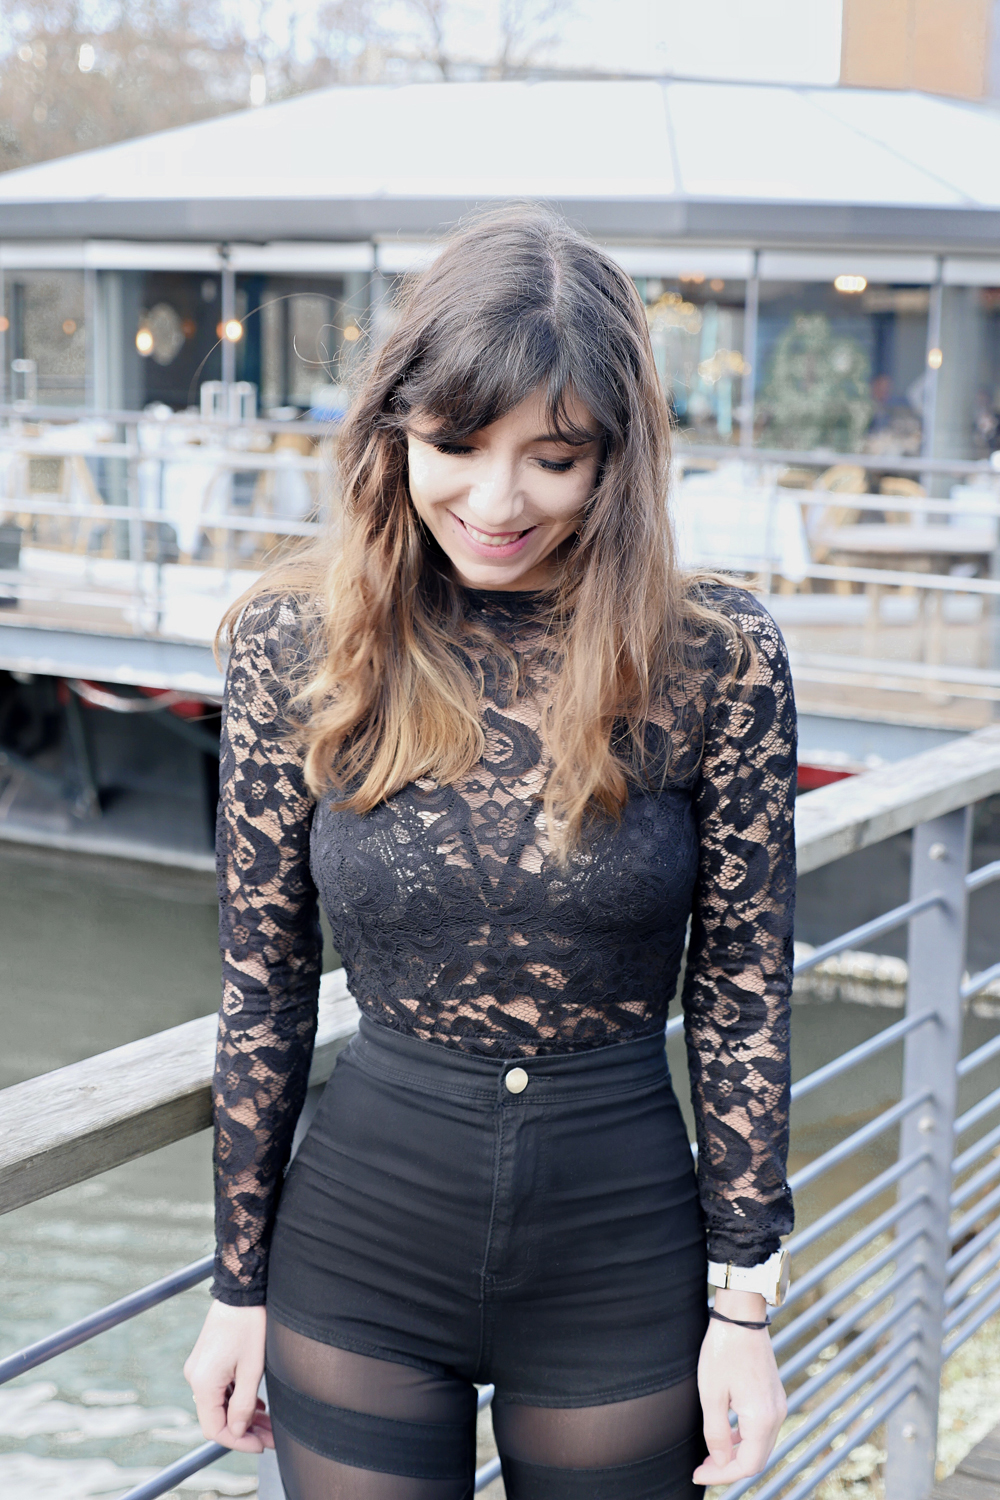 marieluvpink-blog-mode-rivers-cafe-issy-les-moulineaux-4